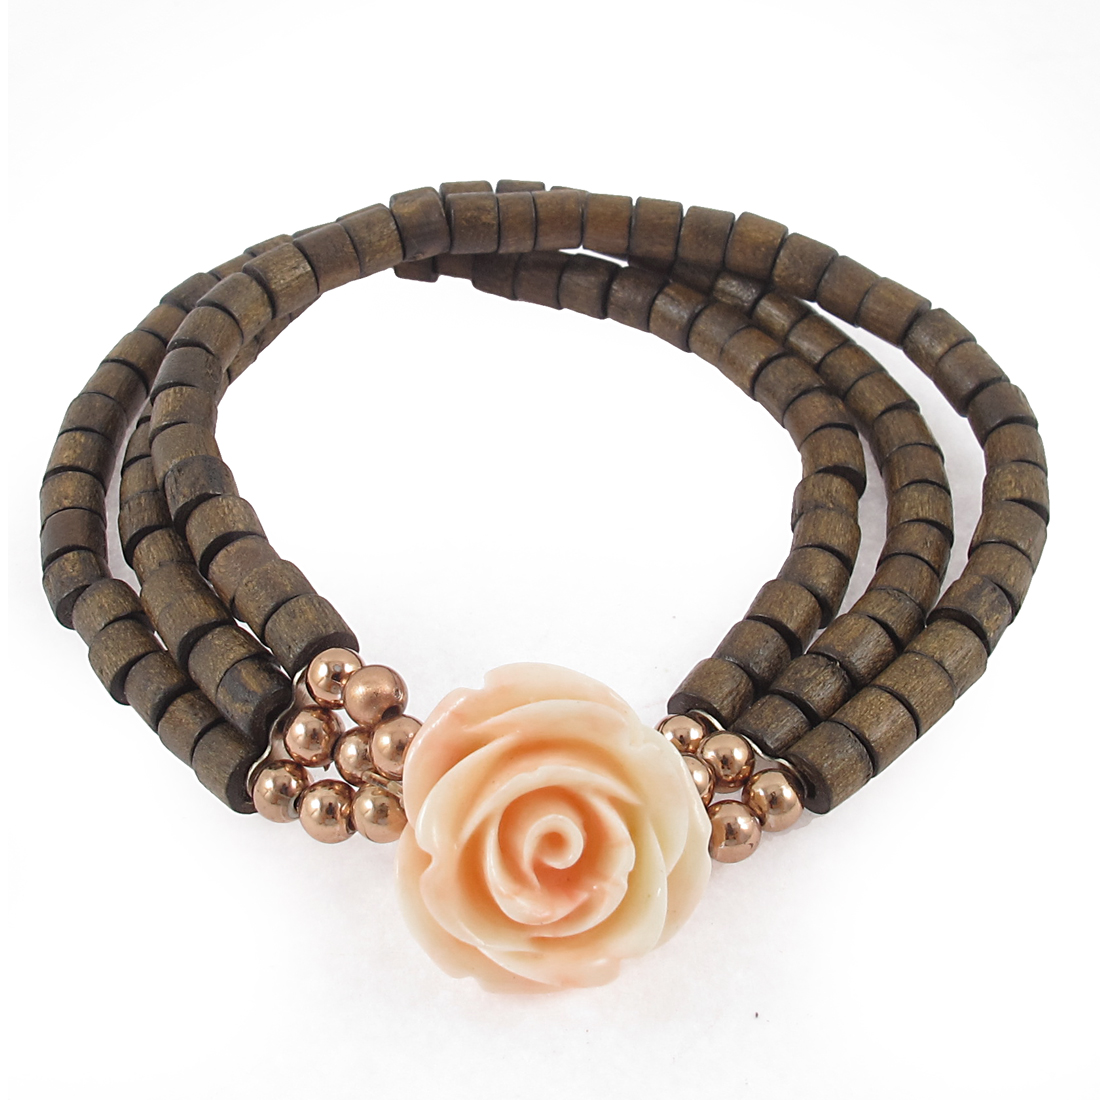 Flower Round Beads Detailing 3 Layers Elastic Bracelet Brown